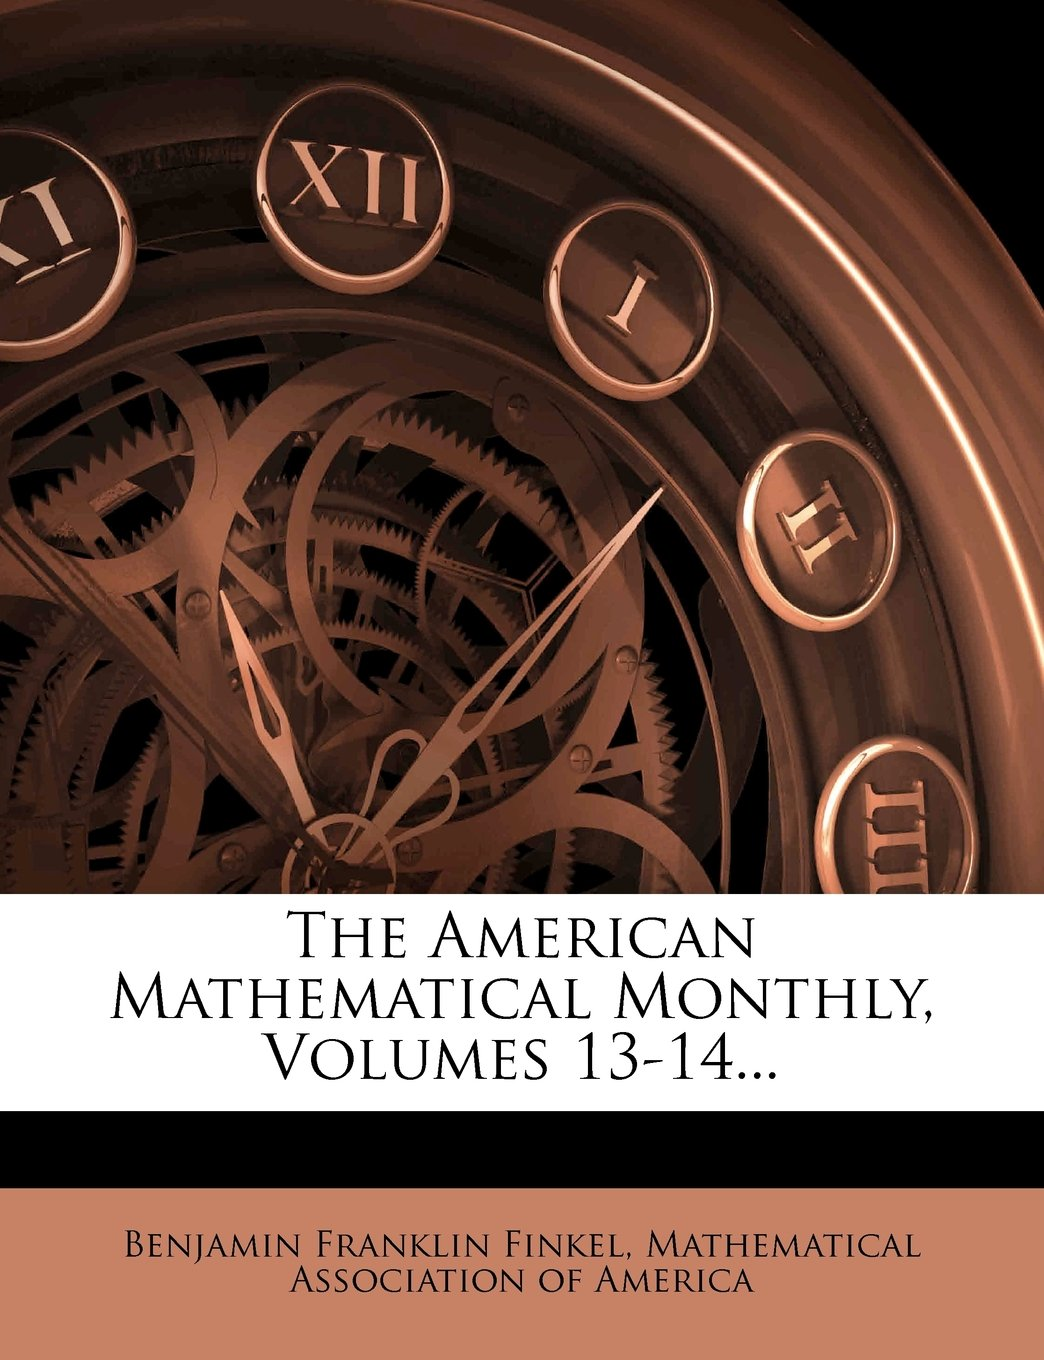 The American Mathematical Monthly, Volumes 13-14... ebook